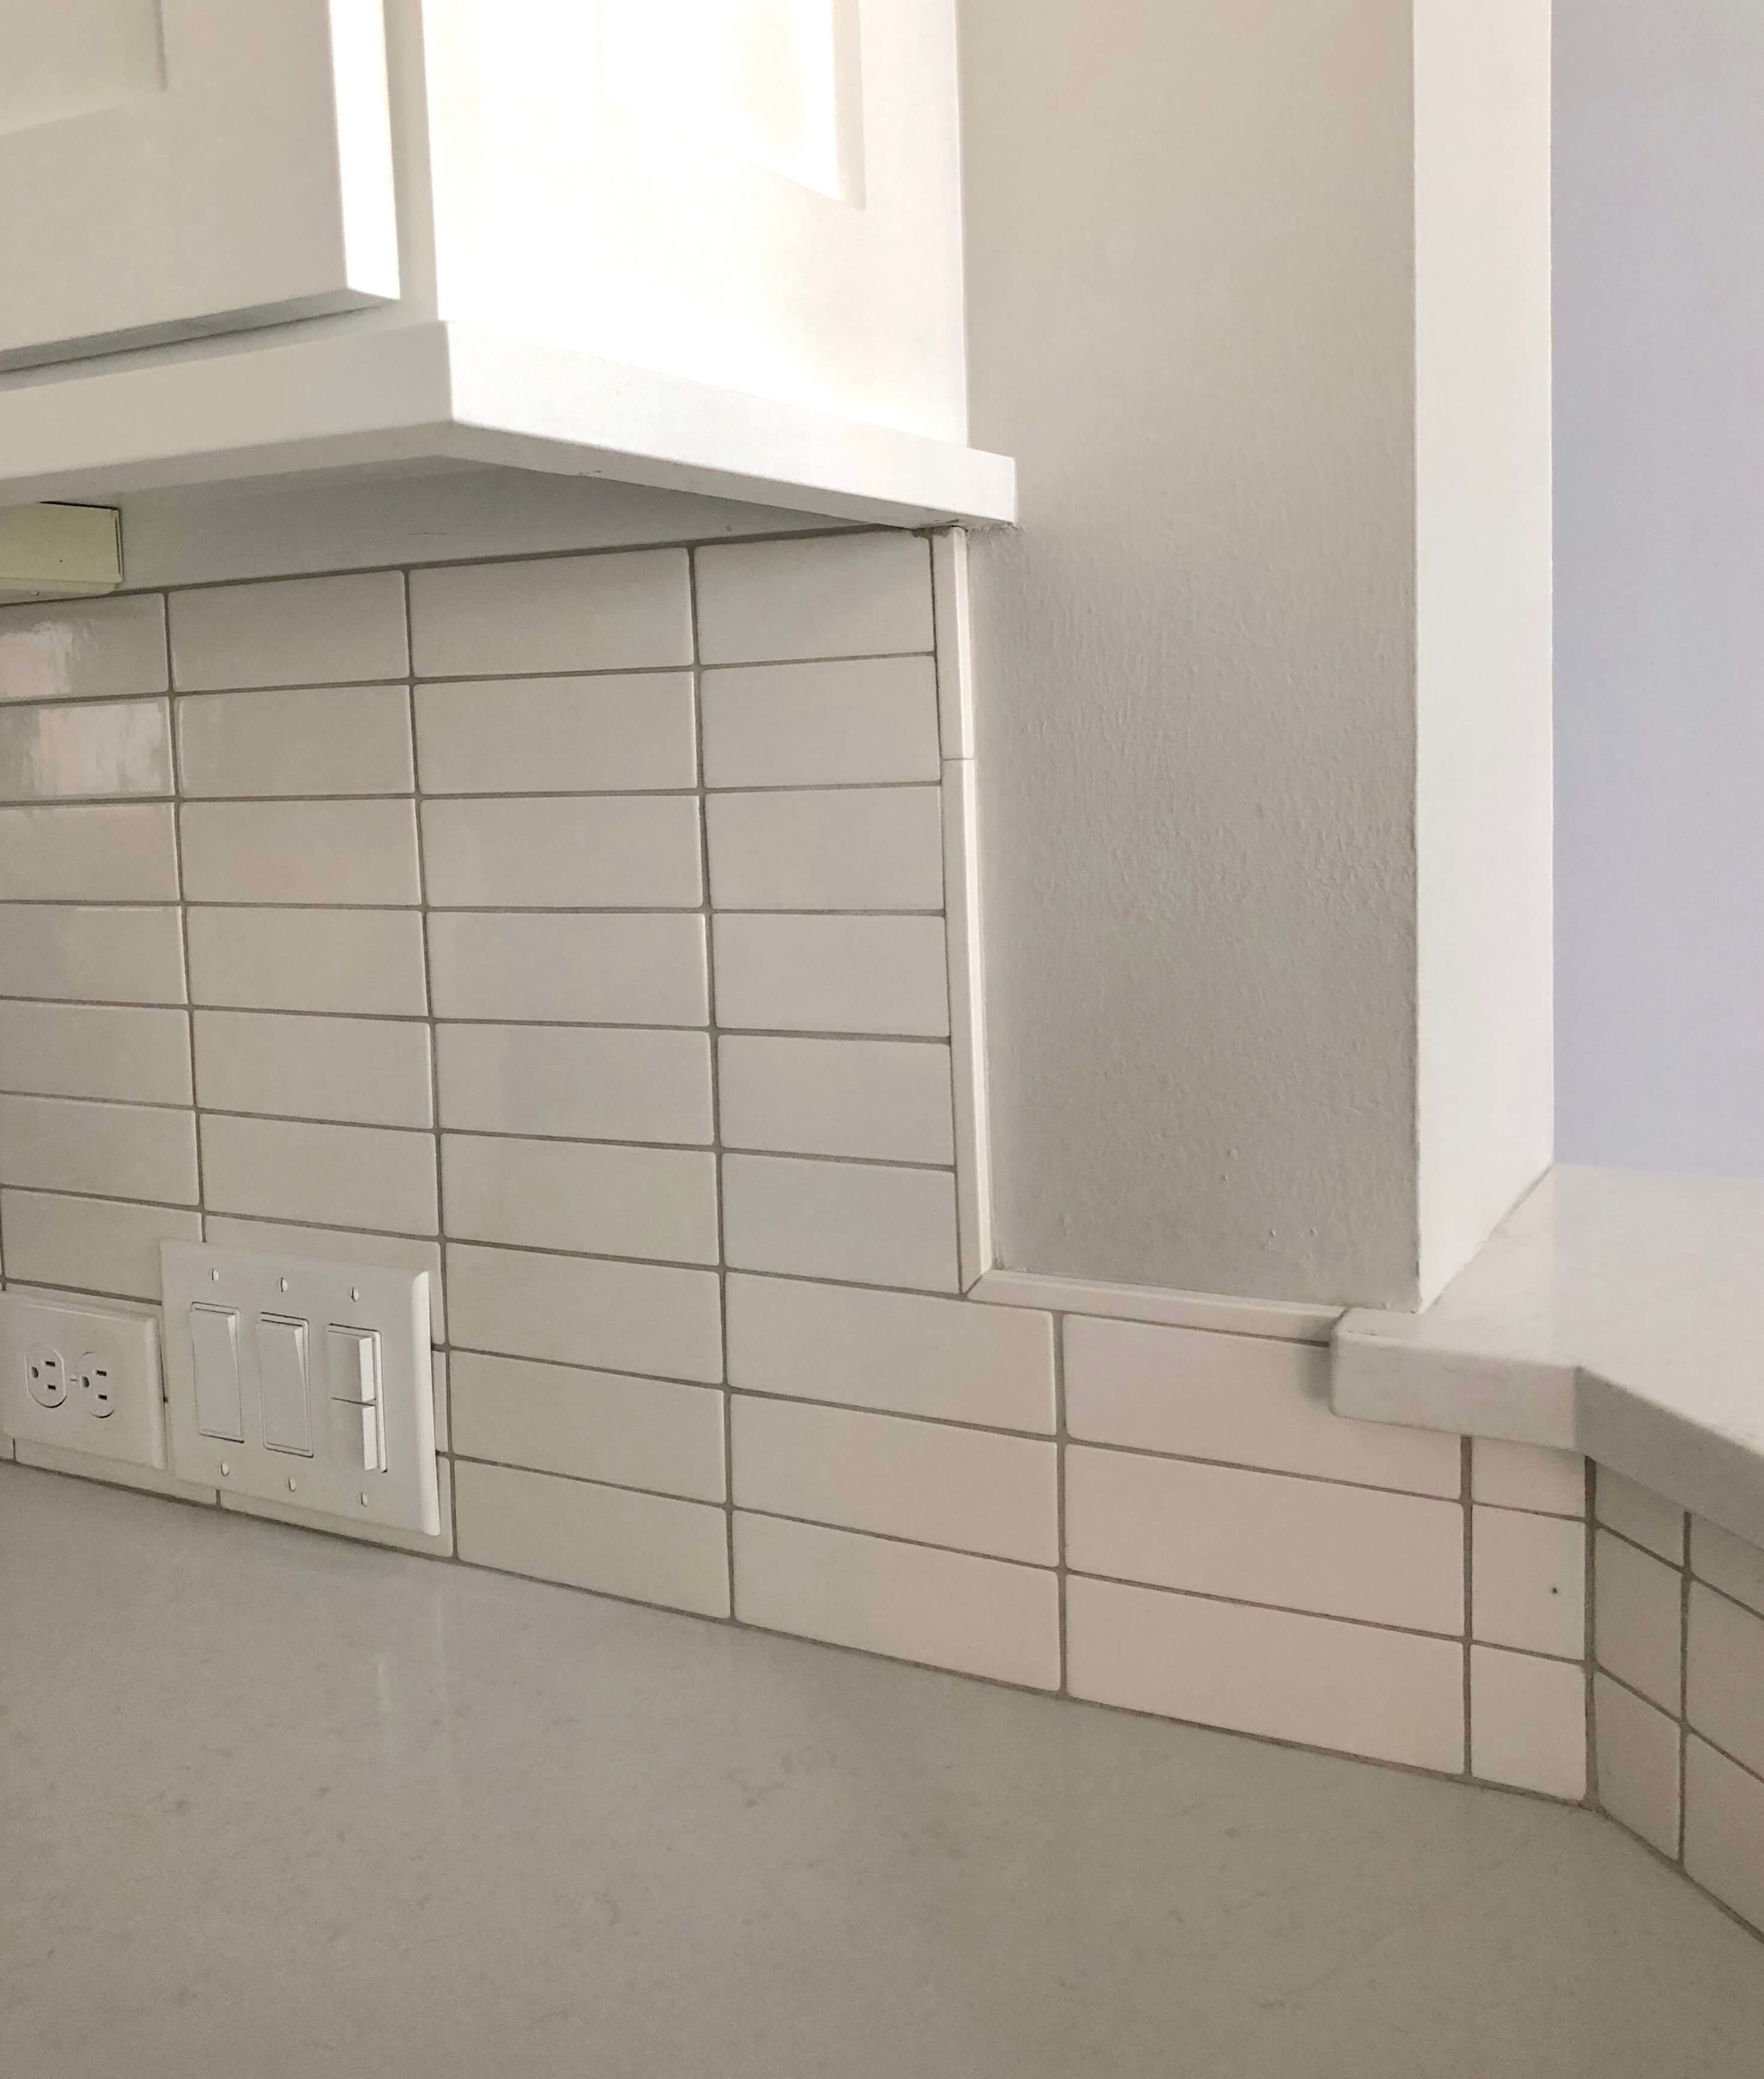 Kitchen Tile Backsplash - How To Transition To A 42